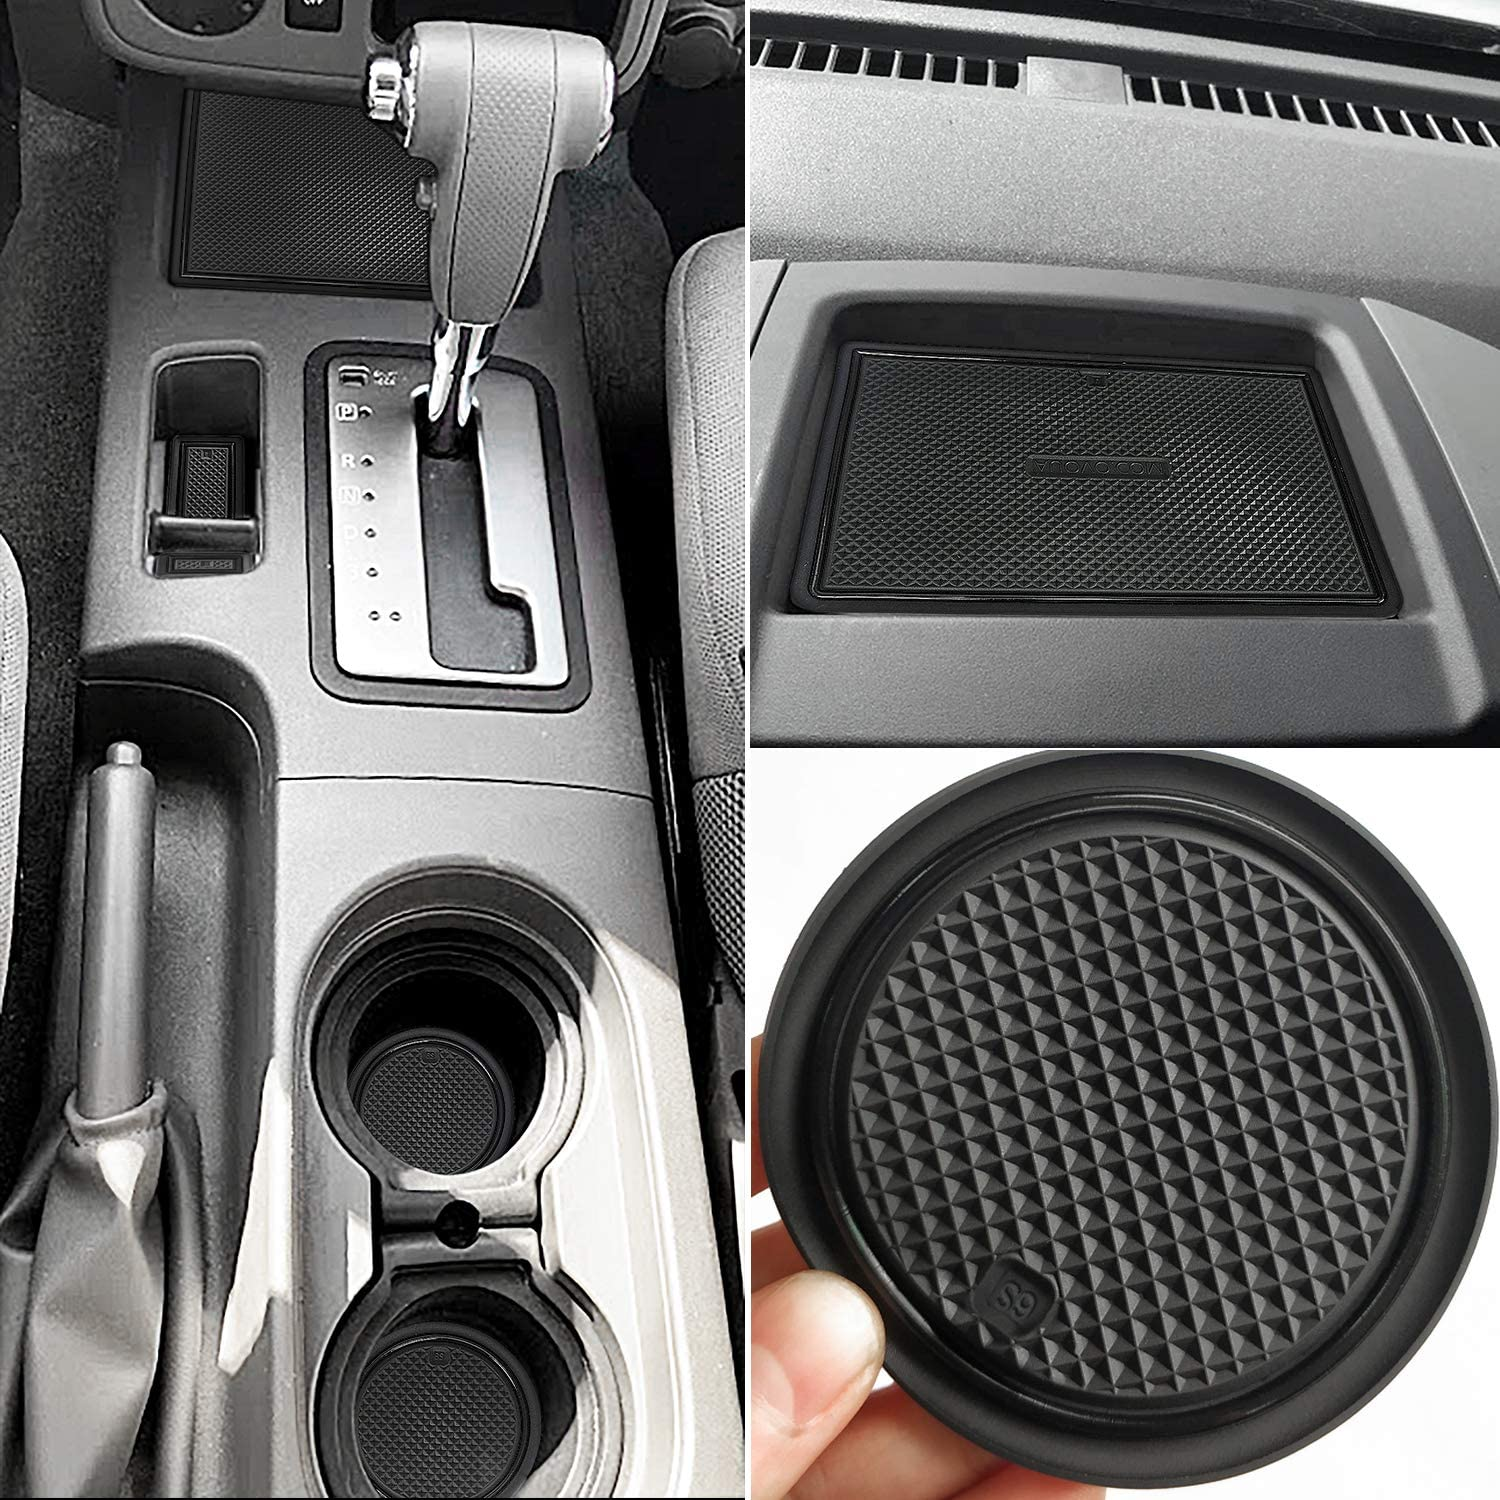 Auovo Anti Dust Mats for Nissan Frontier Crew Cab 10-10 Nissan Xterra  Accessories 10-10 Custom Fit Door Pocket Liners Cup Holder Pads Console